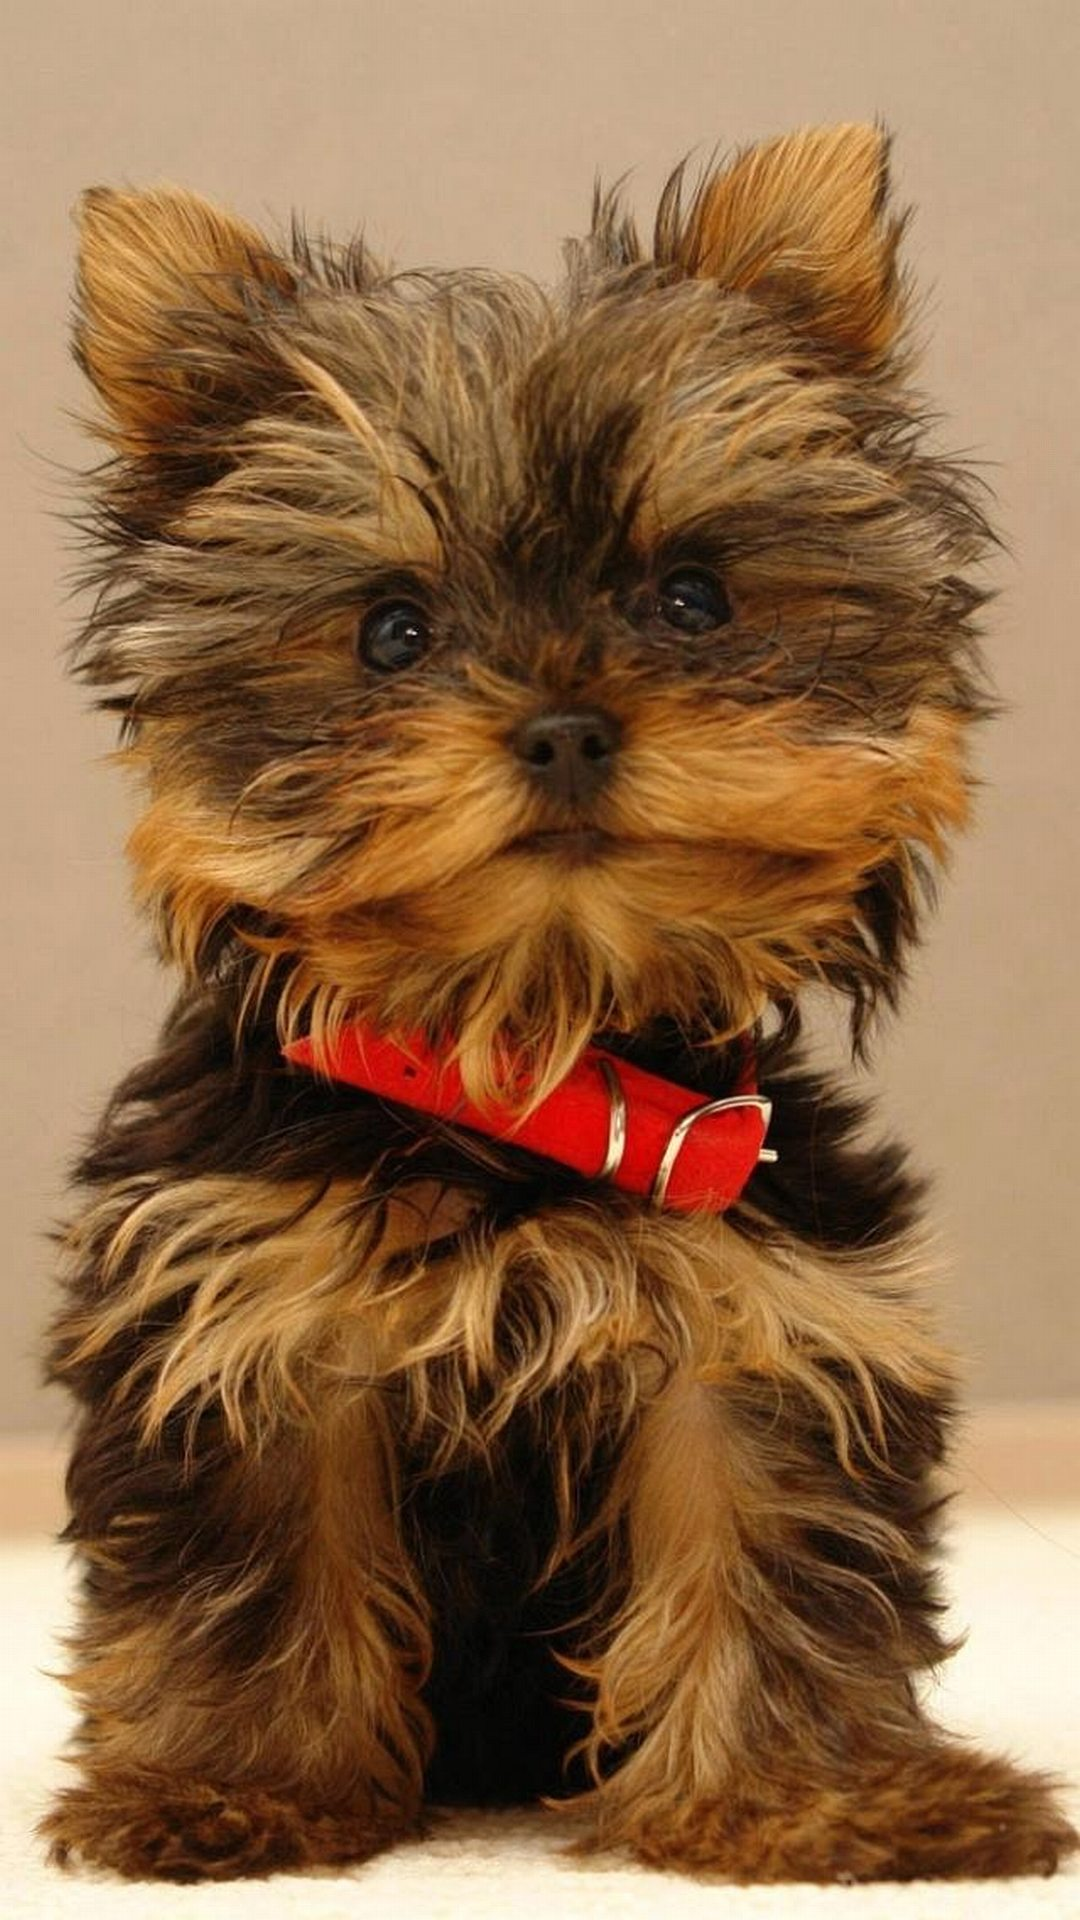 Yorkshire Terrier Cute Puppy Android - Chrisley Knows Best Miley , HD Wallpaper & Backgrounds